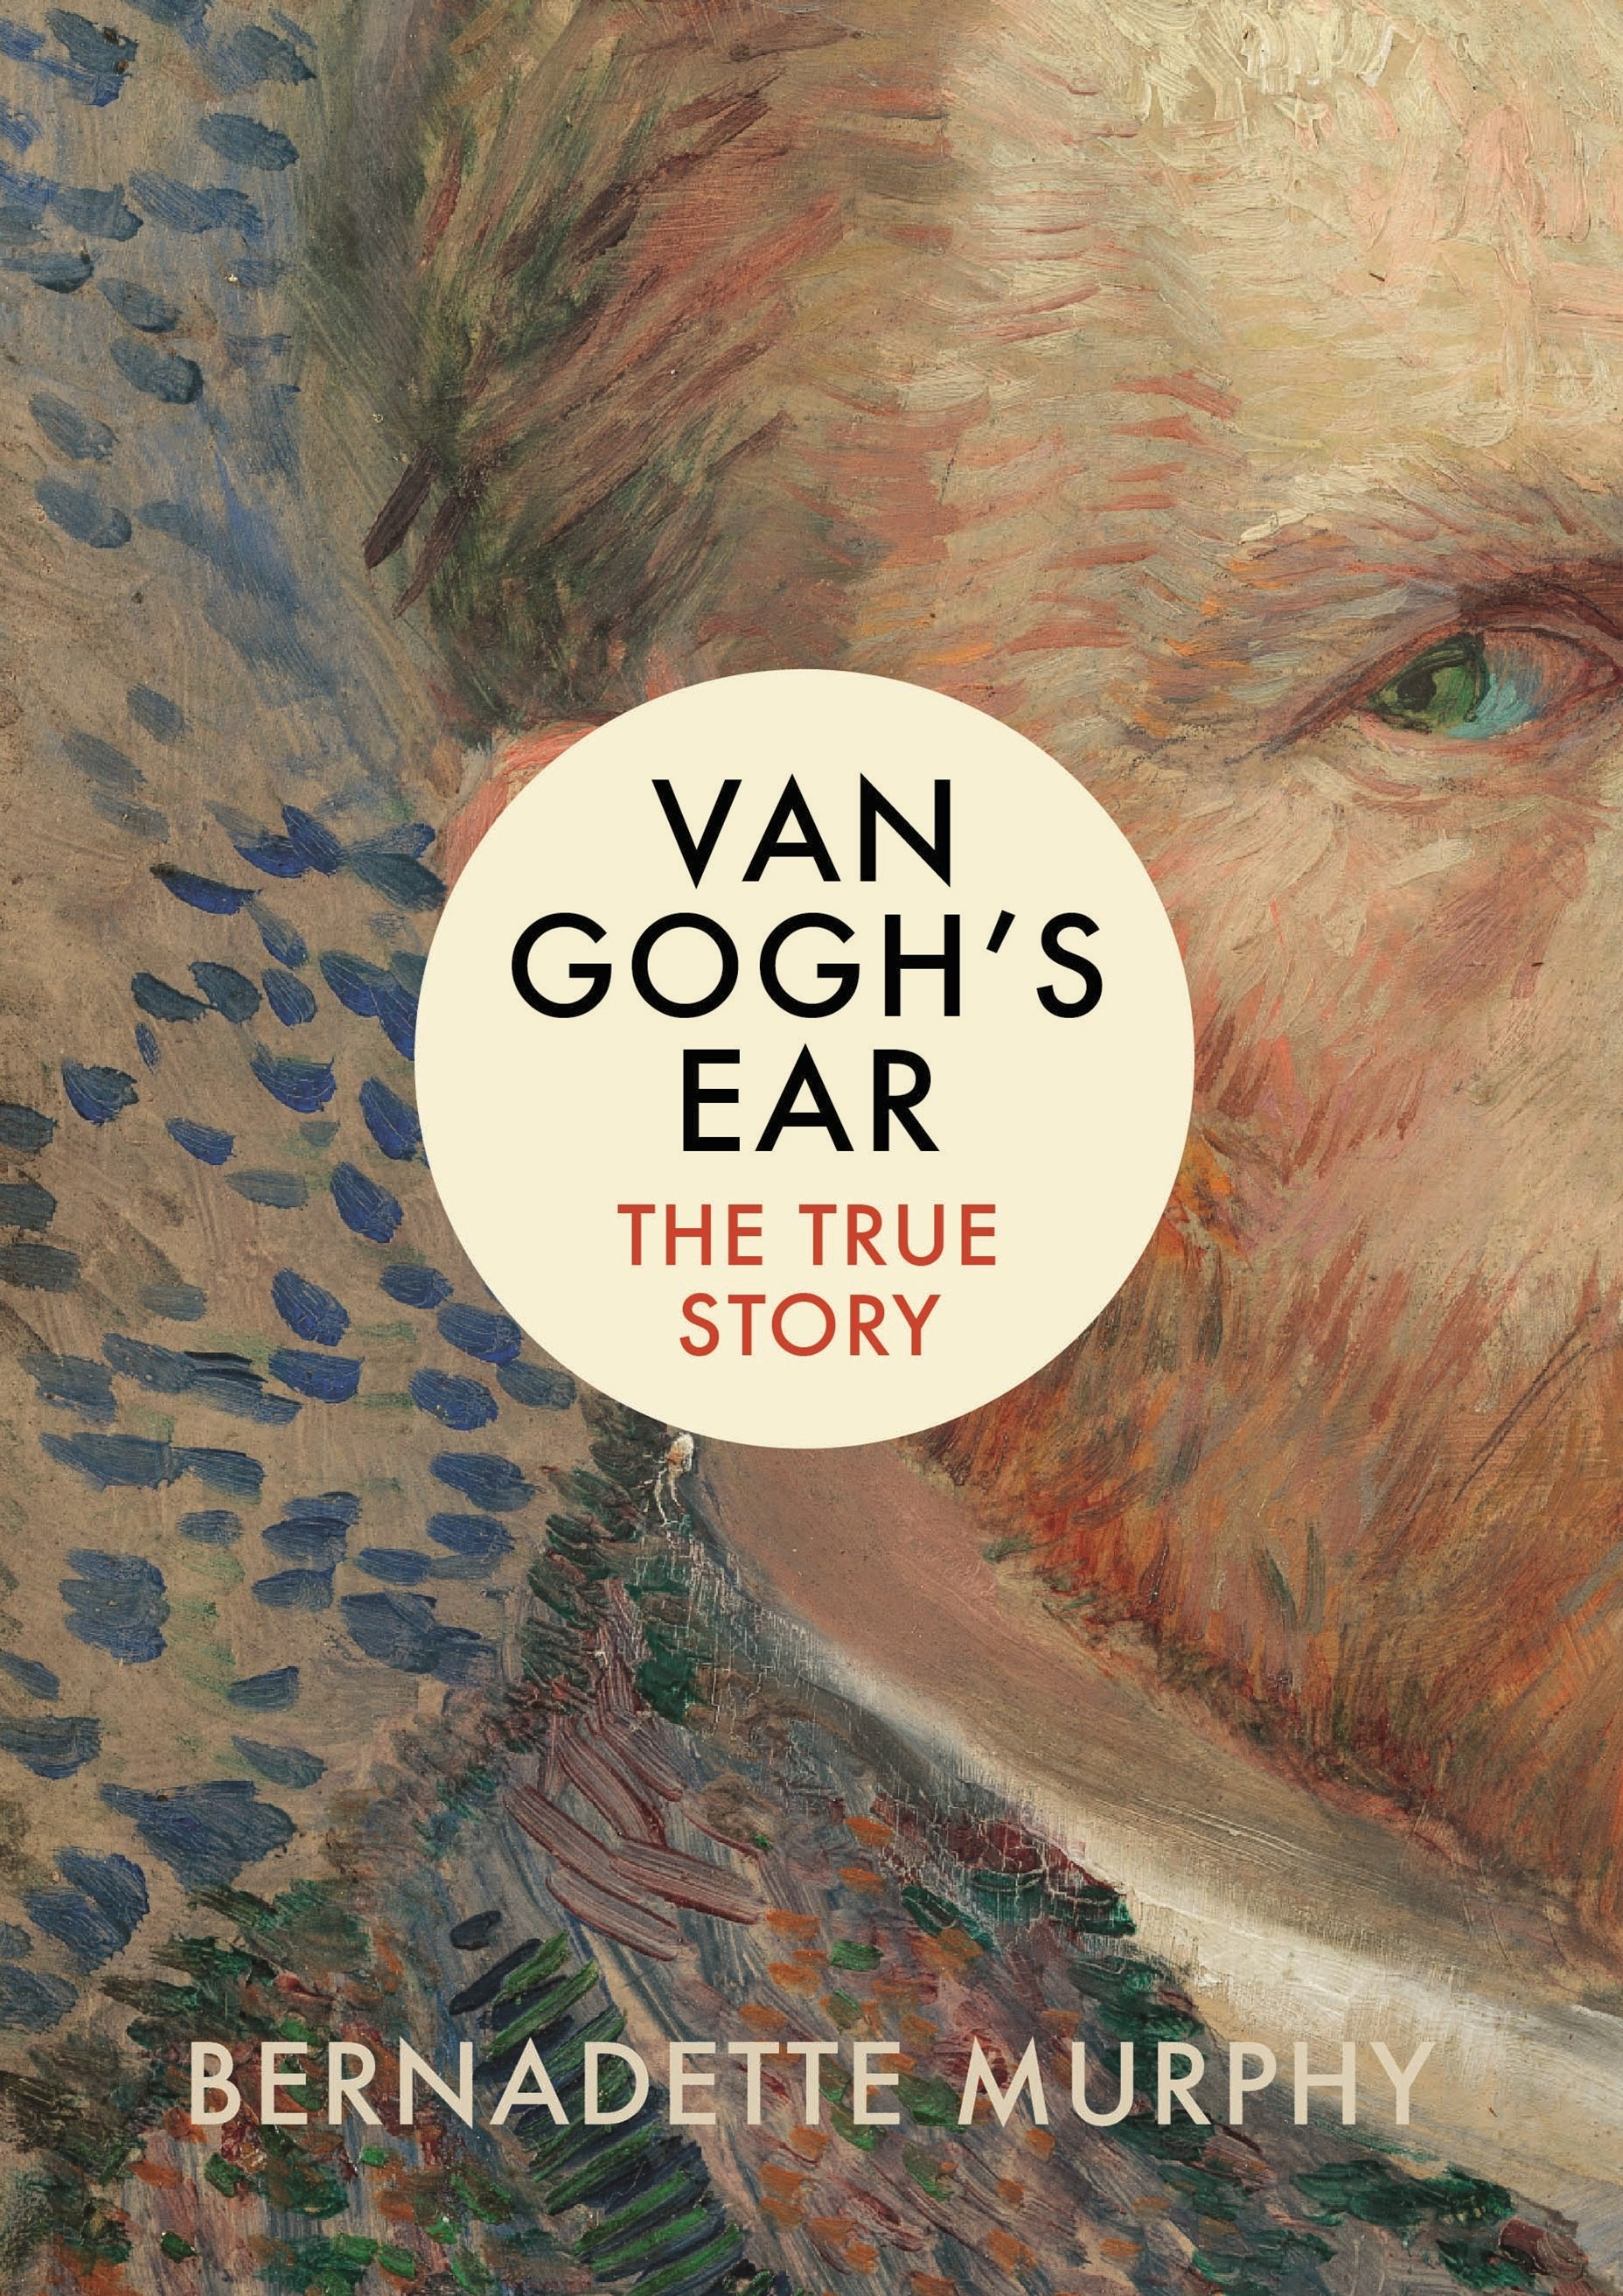 Van Gogh's Ear: The True Story